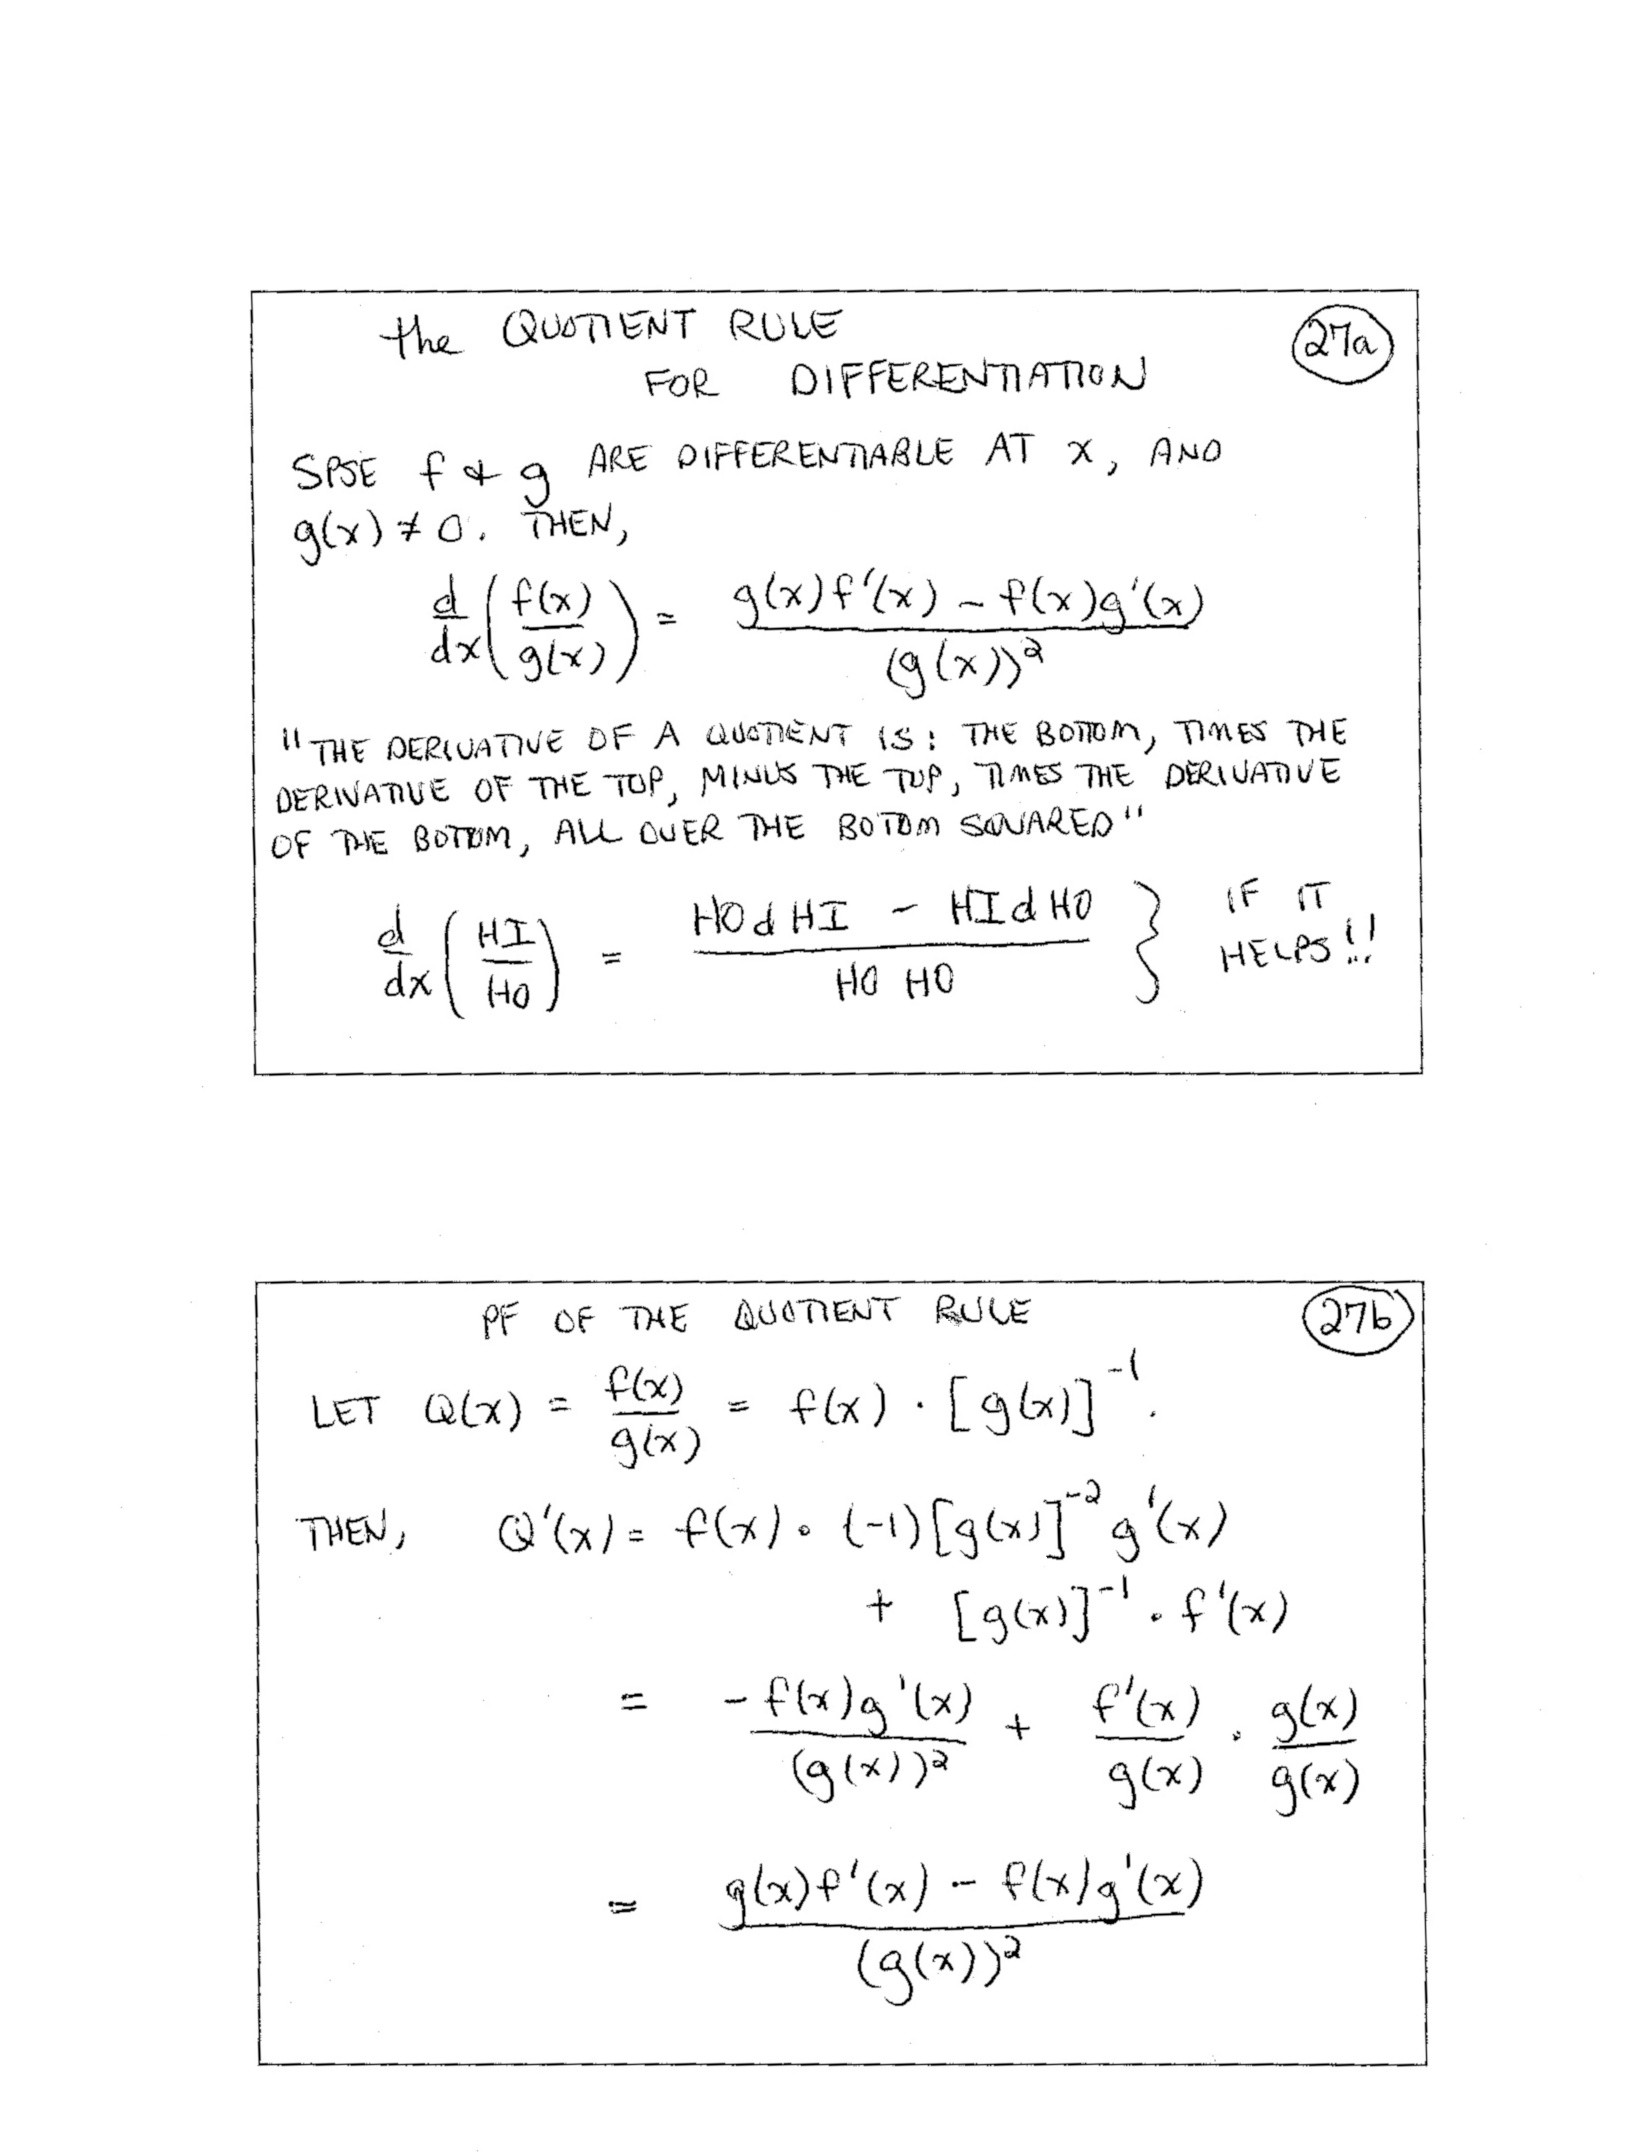 Product and Quotient Rule Worksheet Calculus I Mathematics Daily Syllabus